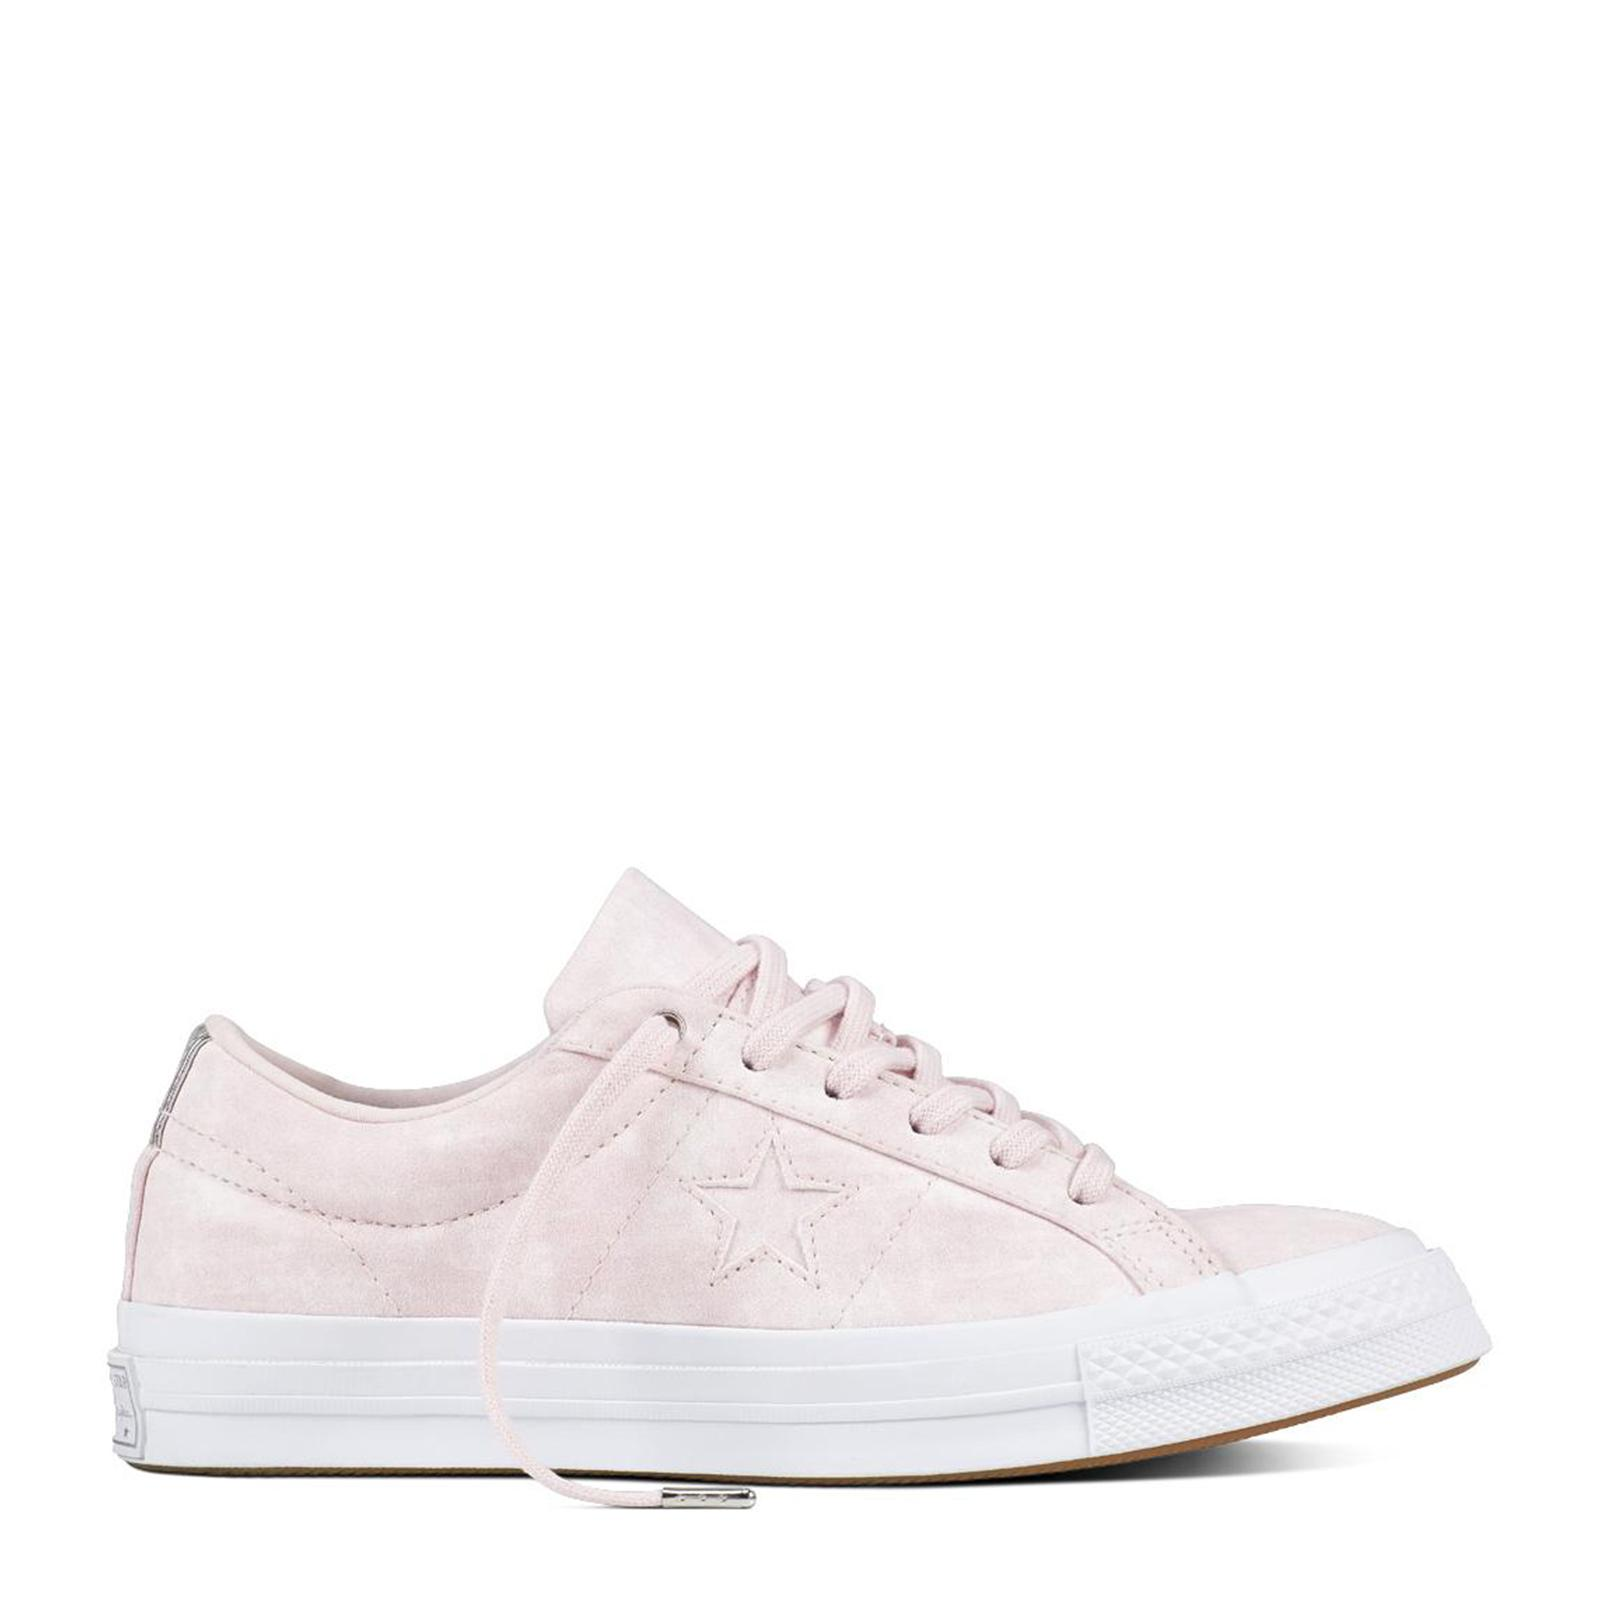 bcfc09039efdb6  SALE  CONVERSE ONE STAR - OX - BARELY ROSE BARELY ROSE WHITE